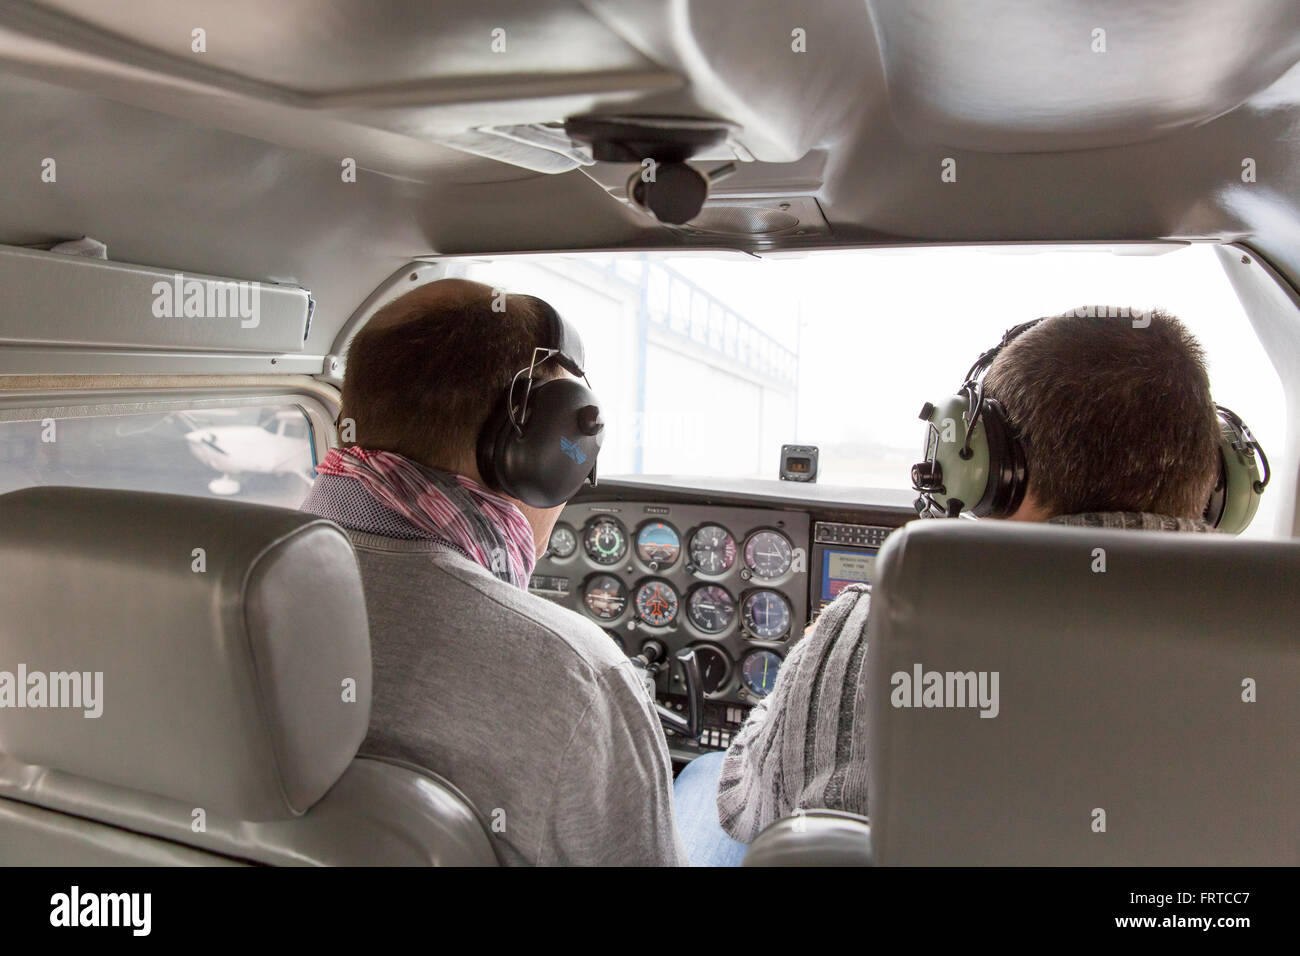 Flying lesson in airplane - Stock Image